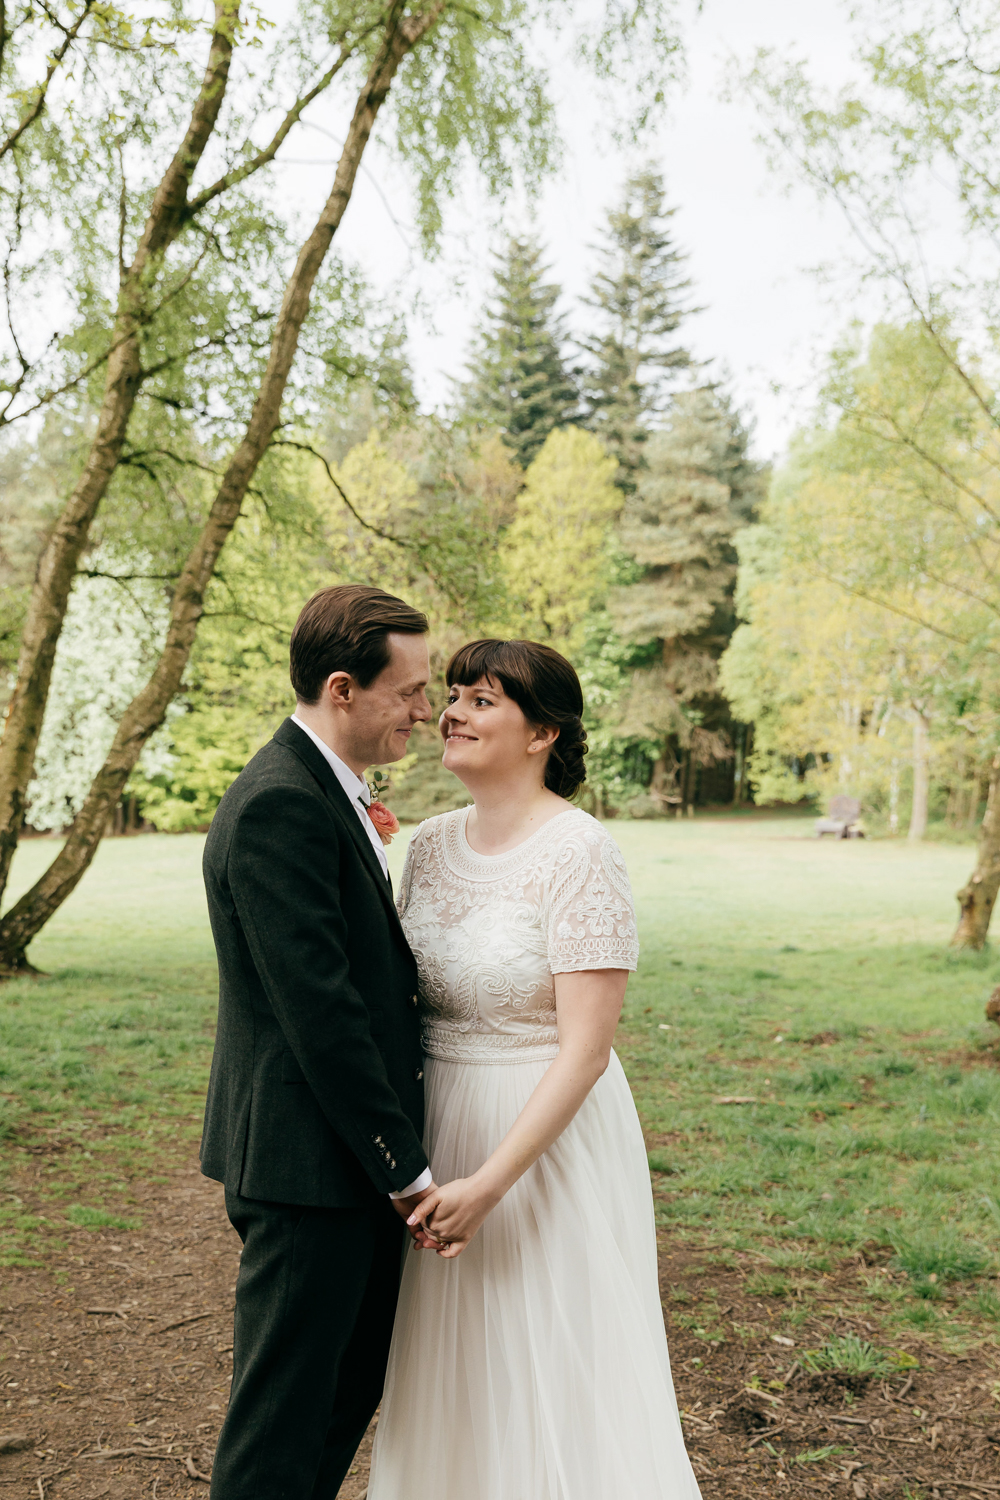 relaxed wedding photography by eco-friendly wedding photographer